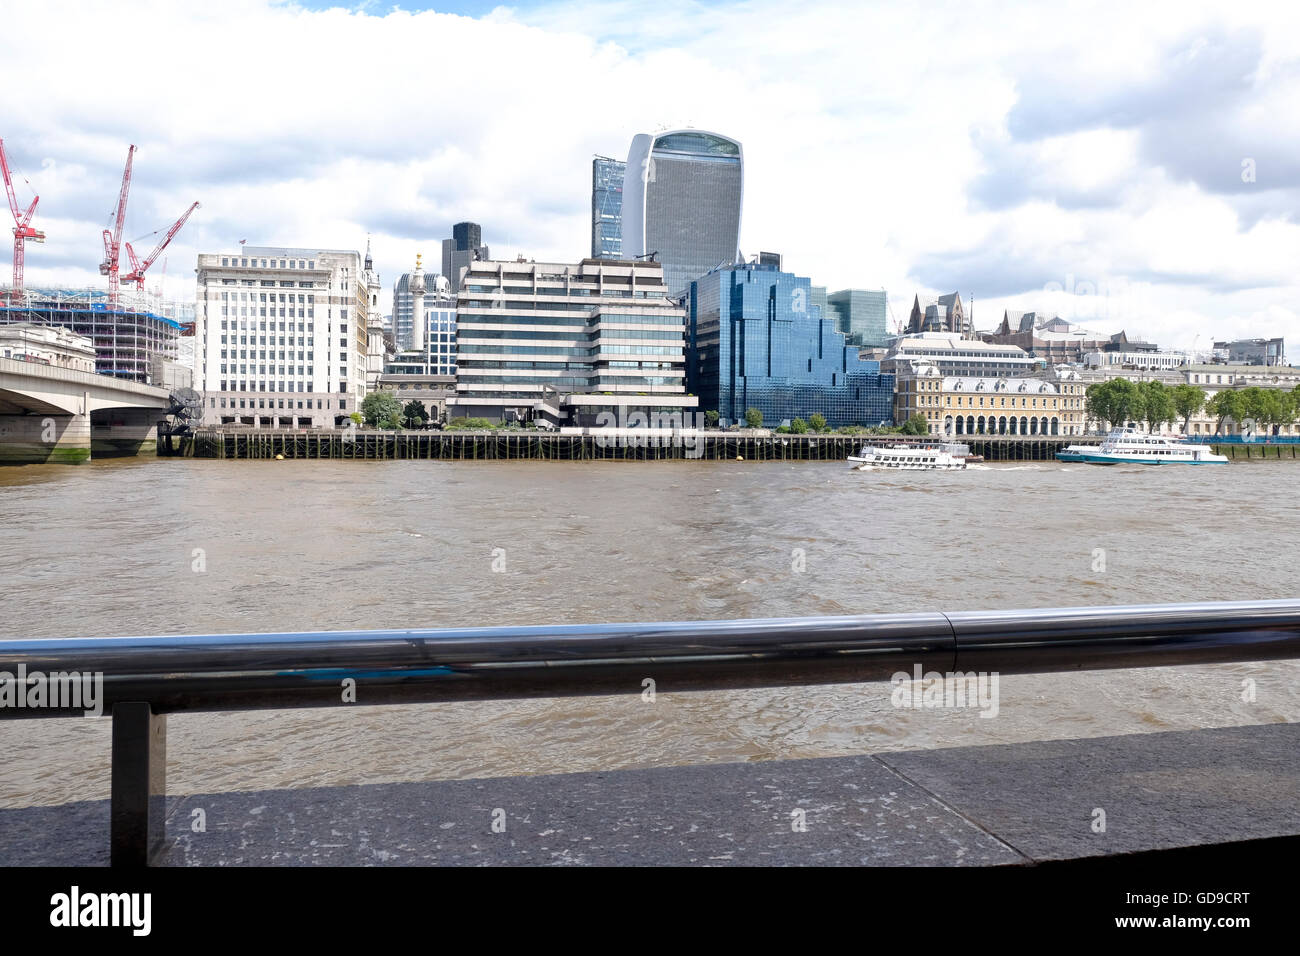 The London skyline viewed over the Thames river 20 Fenchurch Street 'The Walkie Talkie'  a London landmark - Stock Image